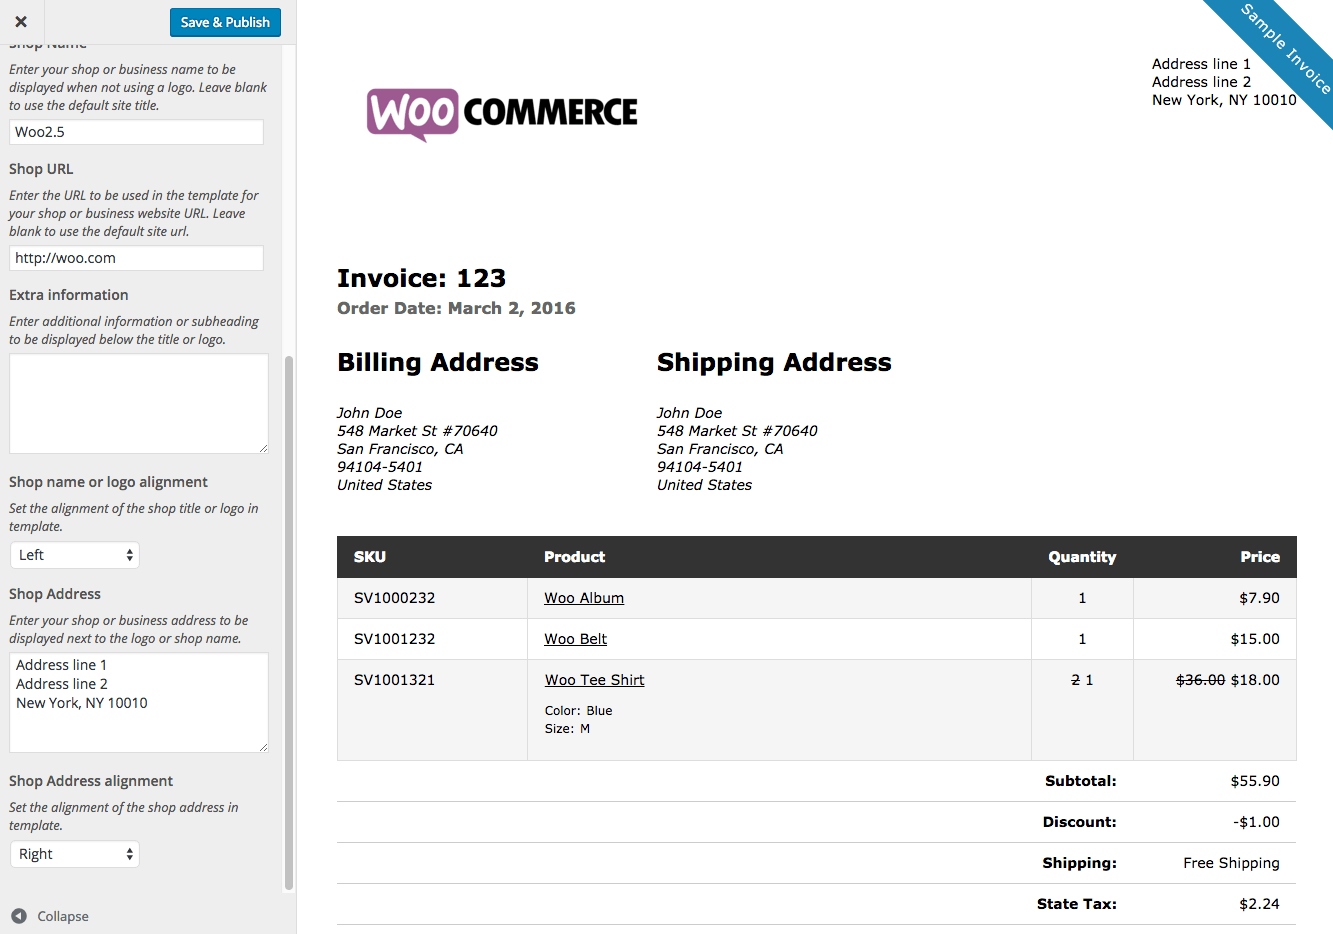 Shopdesignsus  Picturesque Woocommerce Print Invoices Amp Packing Lists  Woocommerce Docs With Likable Woocommerce Print Invoices  Packing Lists Customizer With Captivating Ongc Invoice Tracking Also Invoicing Free Software In Addition Invoice Sample Xls And Ebay Tax Invoice As Well As Invoice Manager Software Additionally Invoice Receipt Sample From Docswoocommercecom With Shopdesignsus  Likable Woocommerce Print Invoices Amp Packing Lists  Woocommerce Docs With Captivating Woocommerce Print Invoices  Packing Lists Customizer And Picturesque Ongc Invoice Tracking Also Invoicing Free Software In Addition Invoice Sample Xls From Docswoocommercecom